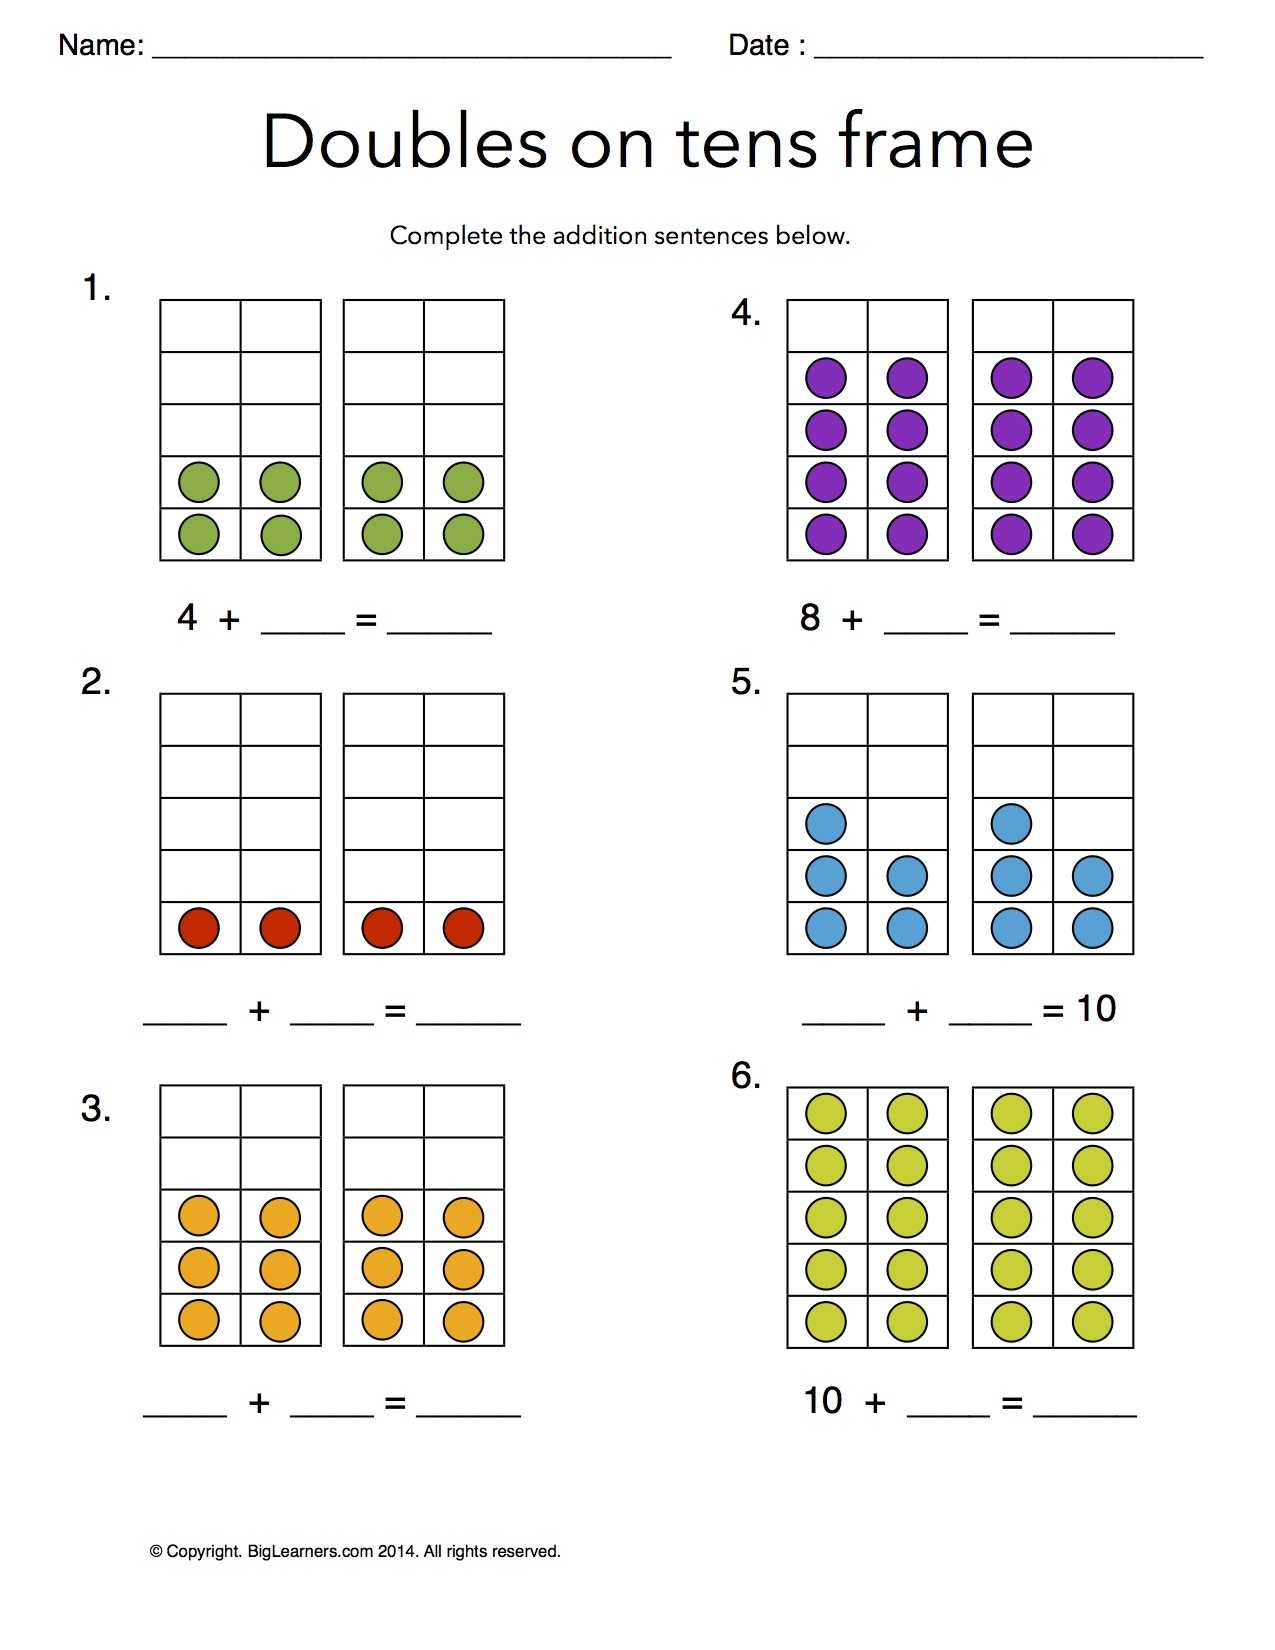 Addition and Subtraction Worksheets for Grade 1 and Grade 1 Free Mon Core Math Worksheets